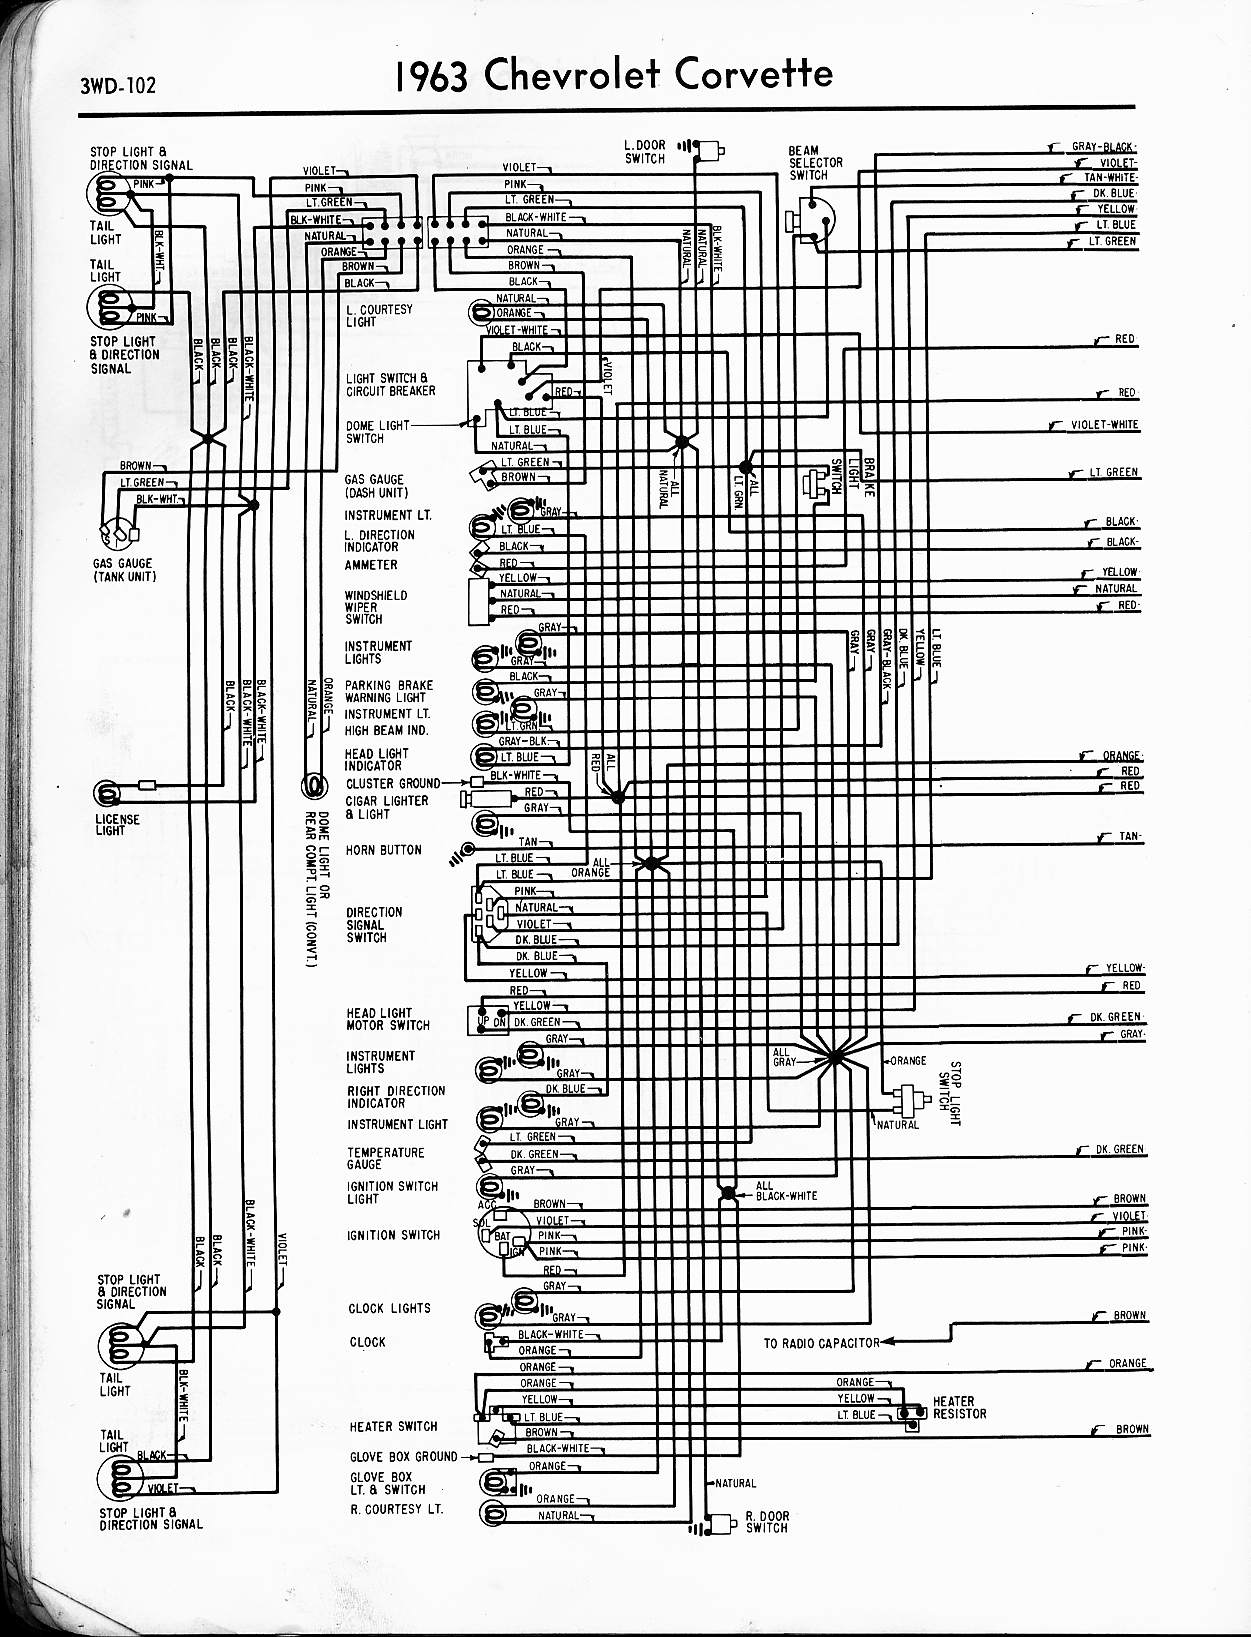 MWireChev63_3WD 102 57 65 chevy wiring diagrams 66 Corvette at bayanpartner.co